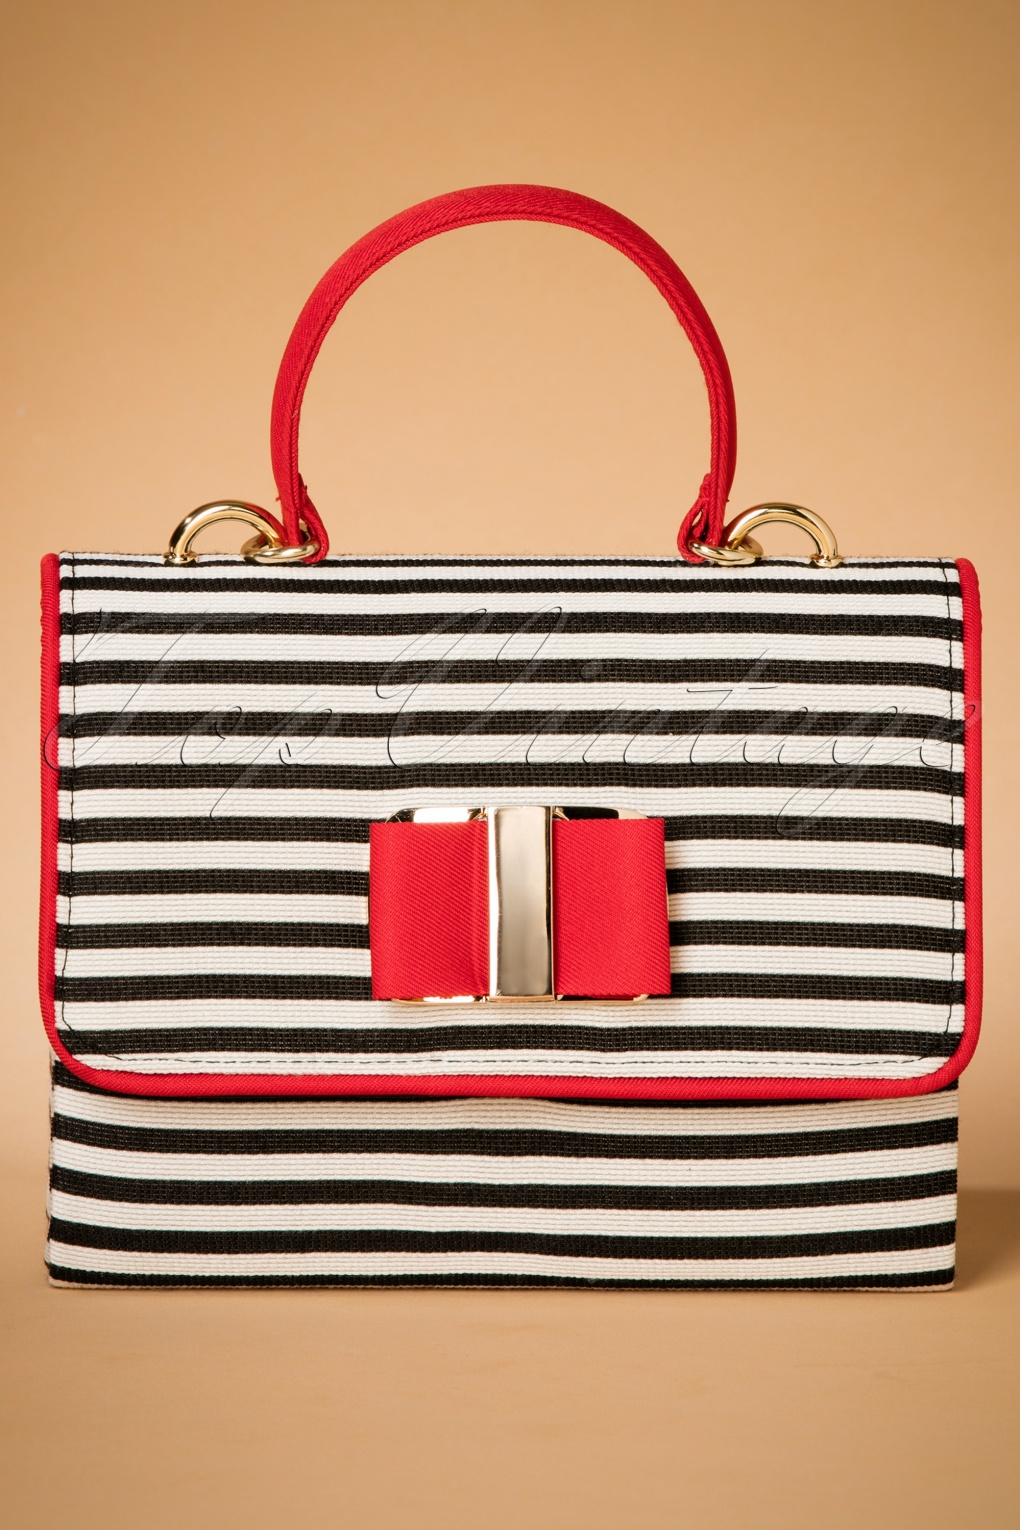 Vintage & Retro Handbags, Purses, Wallets, Bags 60s Casablanca Striped Handbag in Black and Red £46.13 AT vintagedancer.com